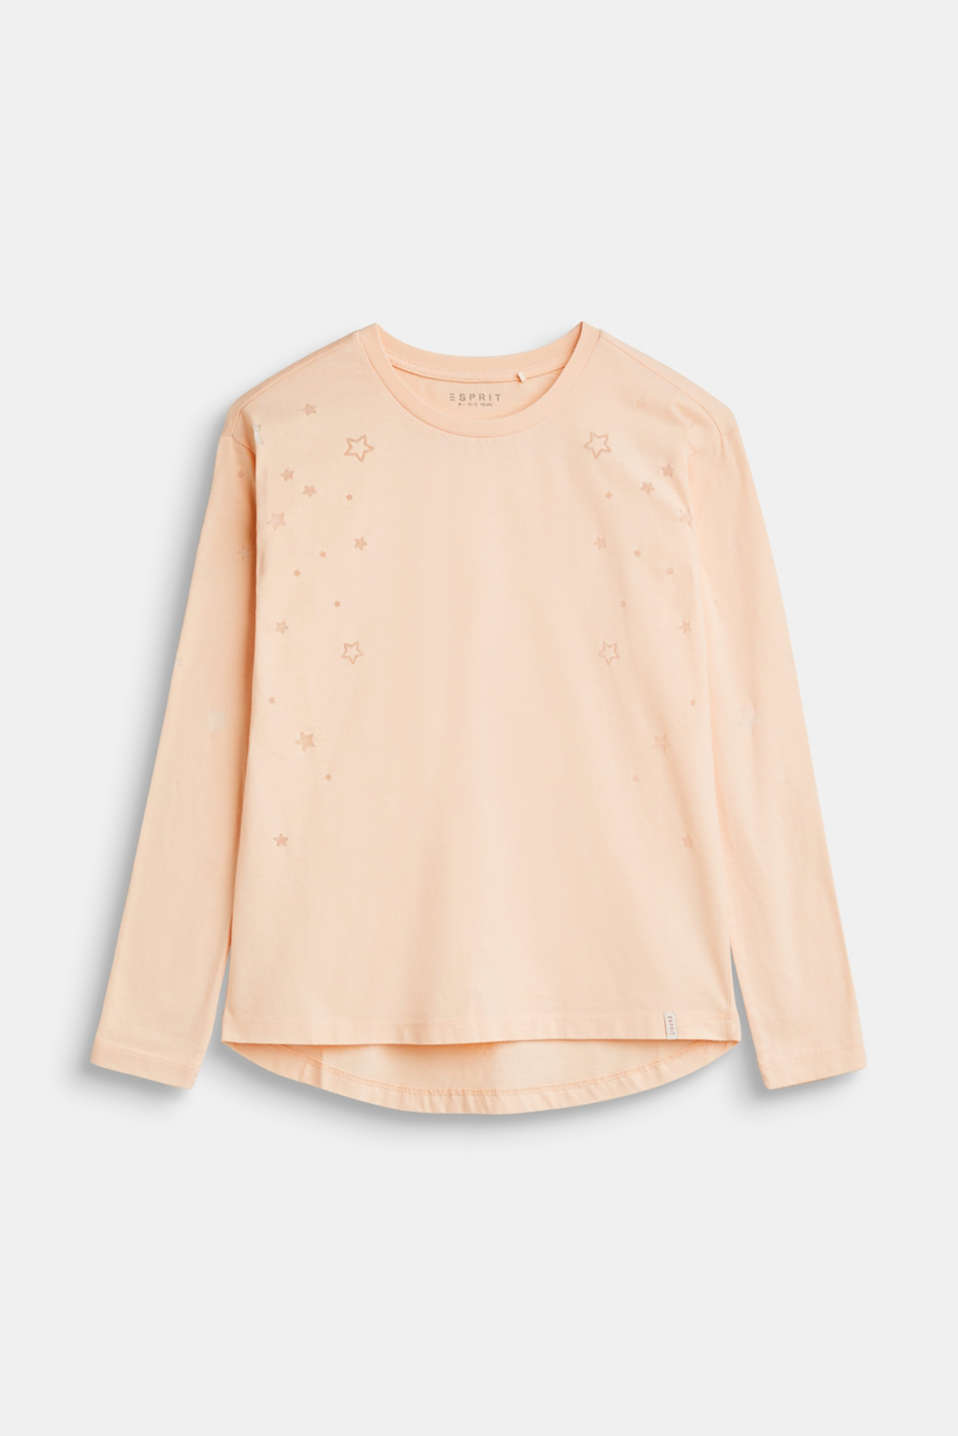 Esprit - Long sleeve top with burnt-out stars